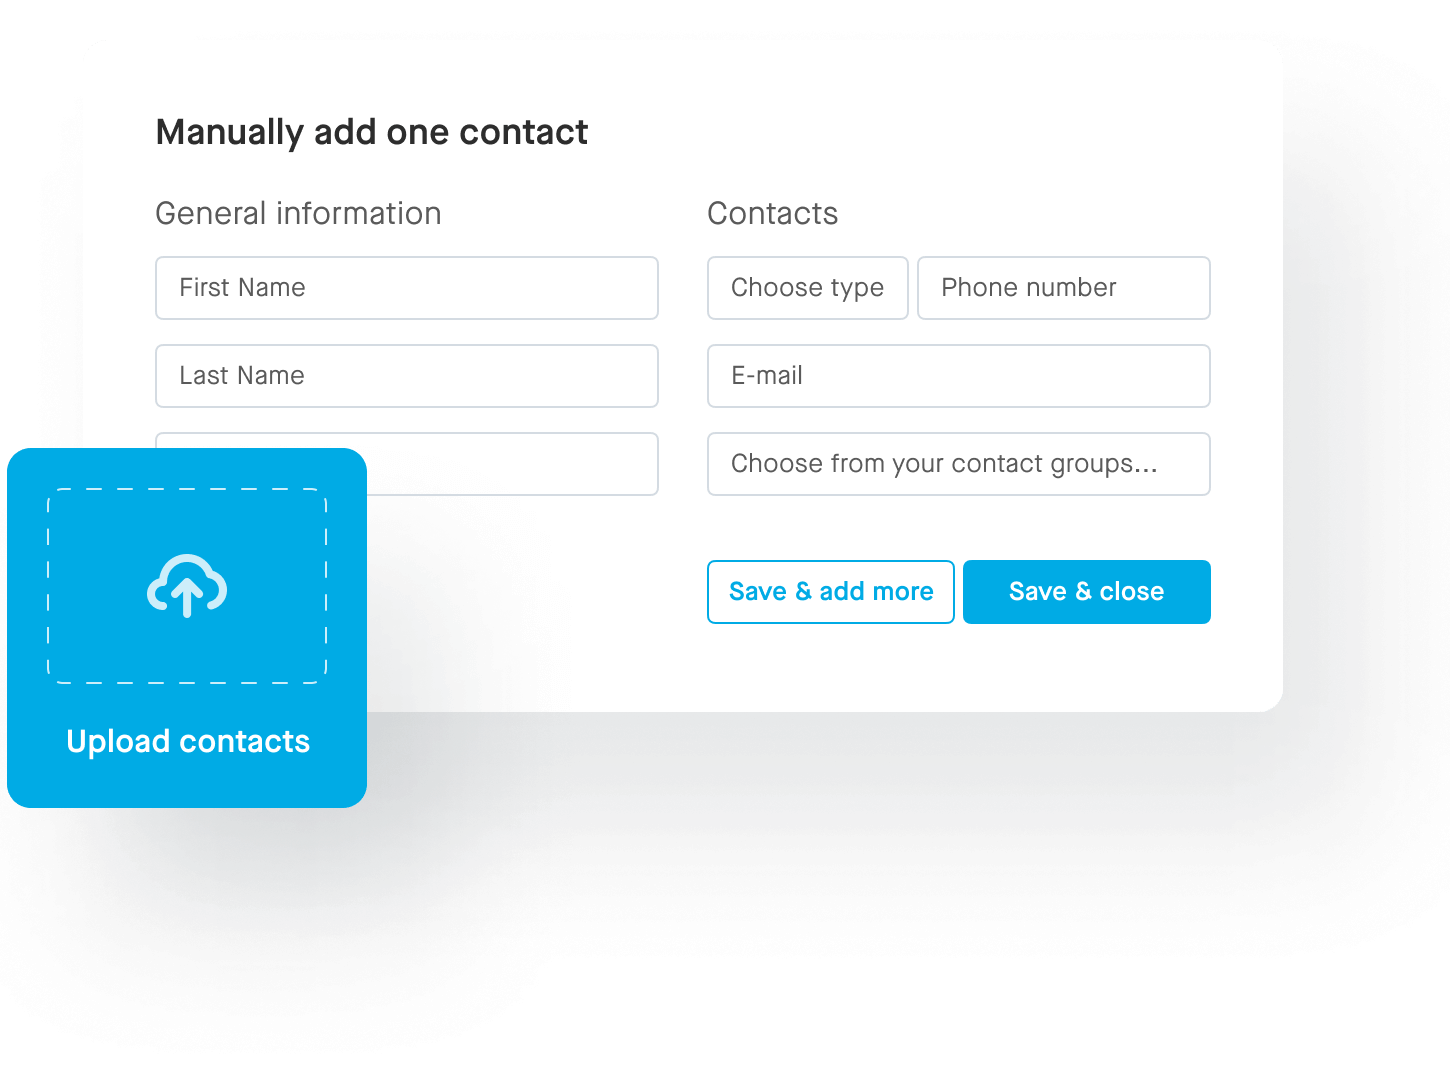 Adding contacts screen illustration